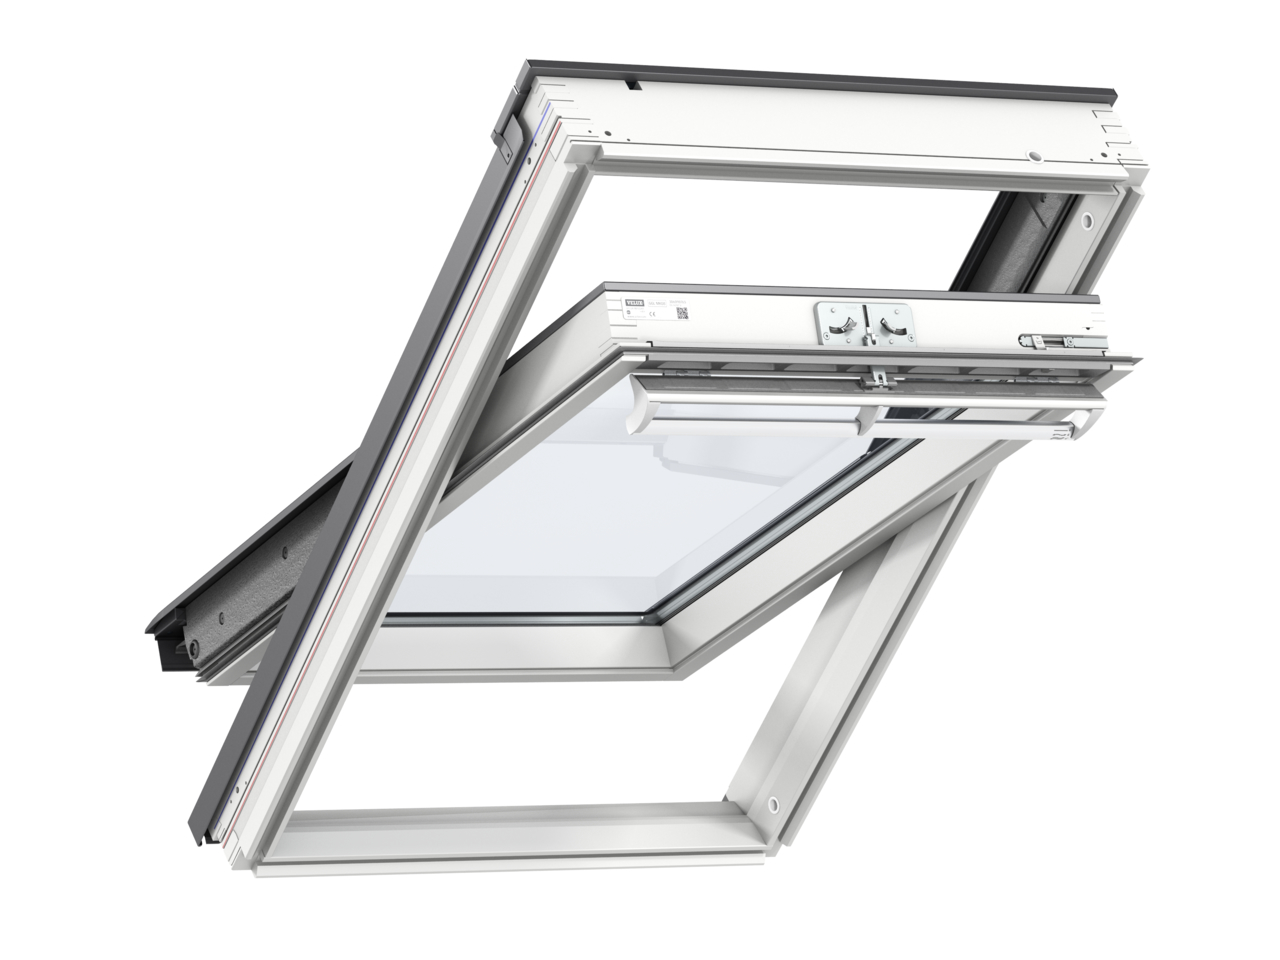 Velux GGL MK04 780 x 980mm Centre Pivot 66 Pane Roof Window - White Painted